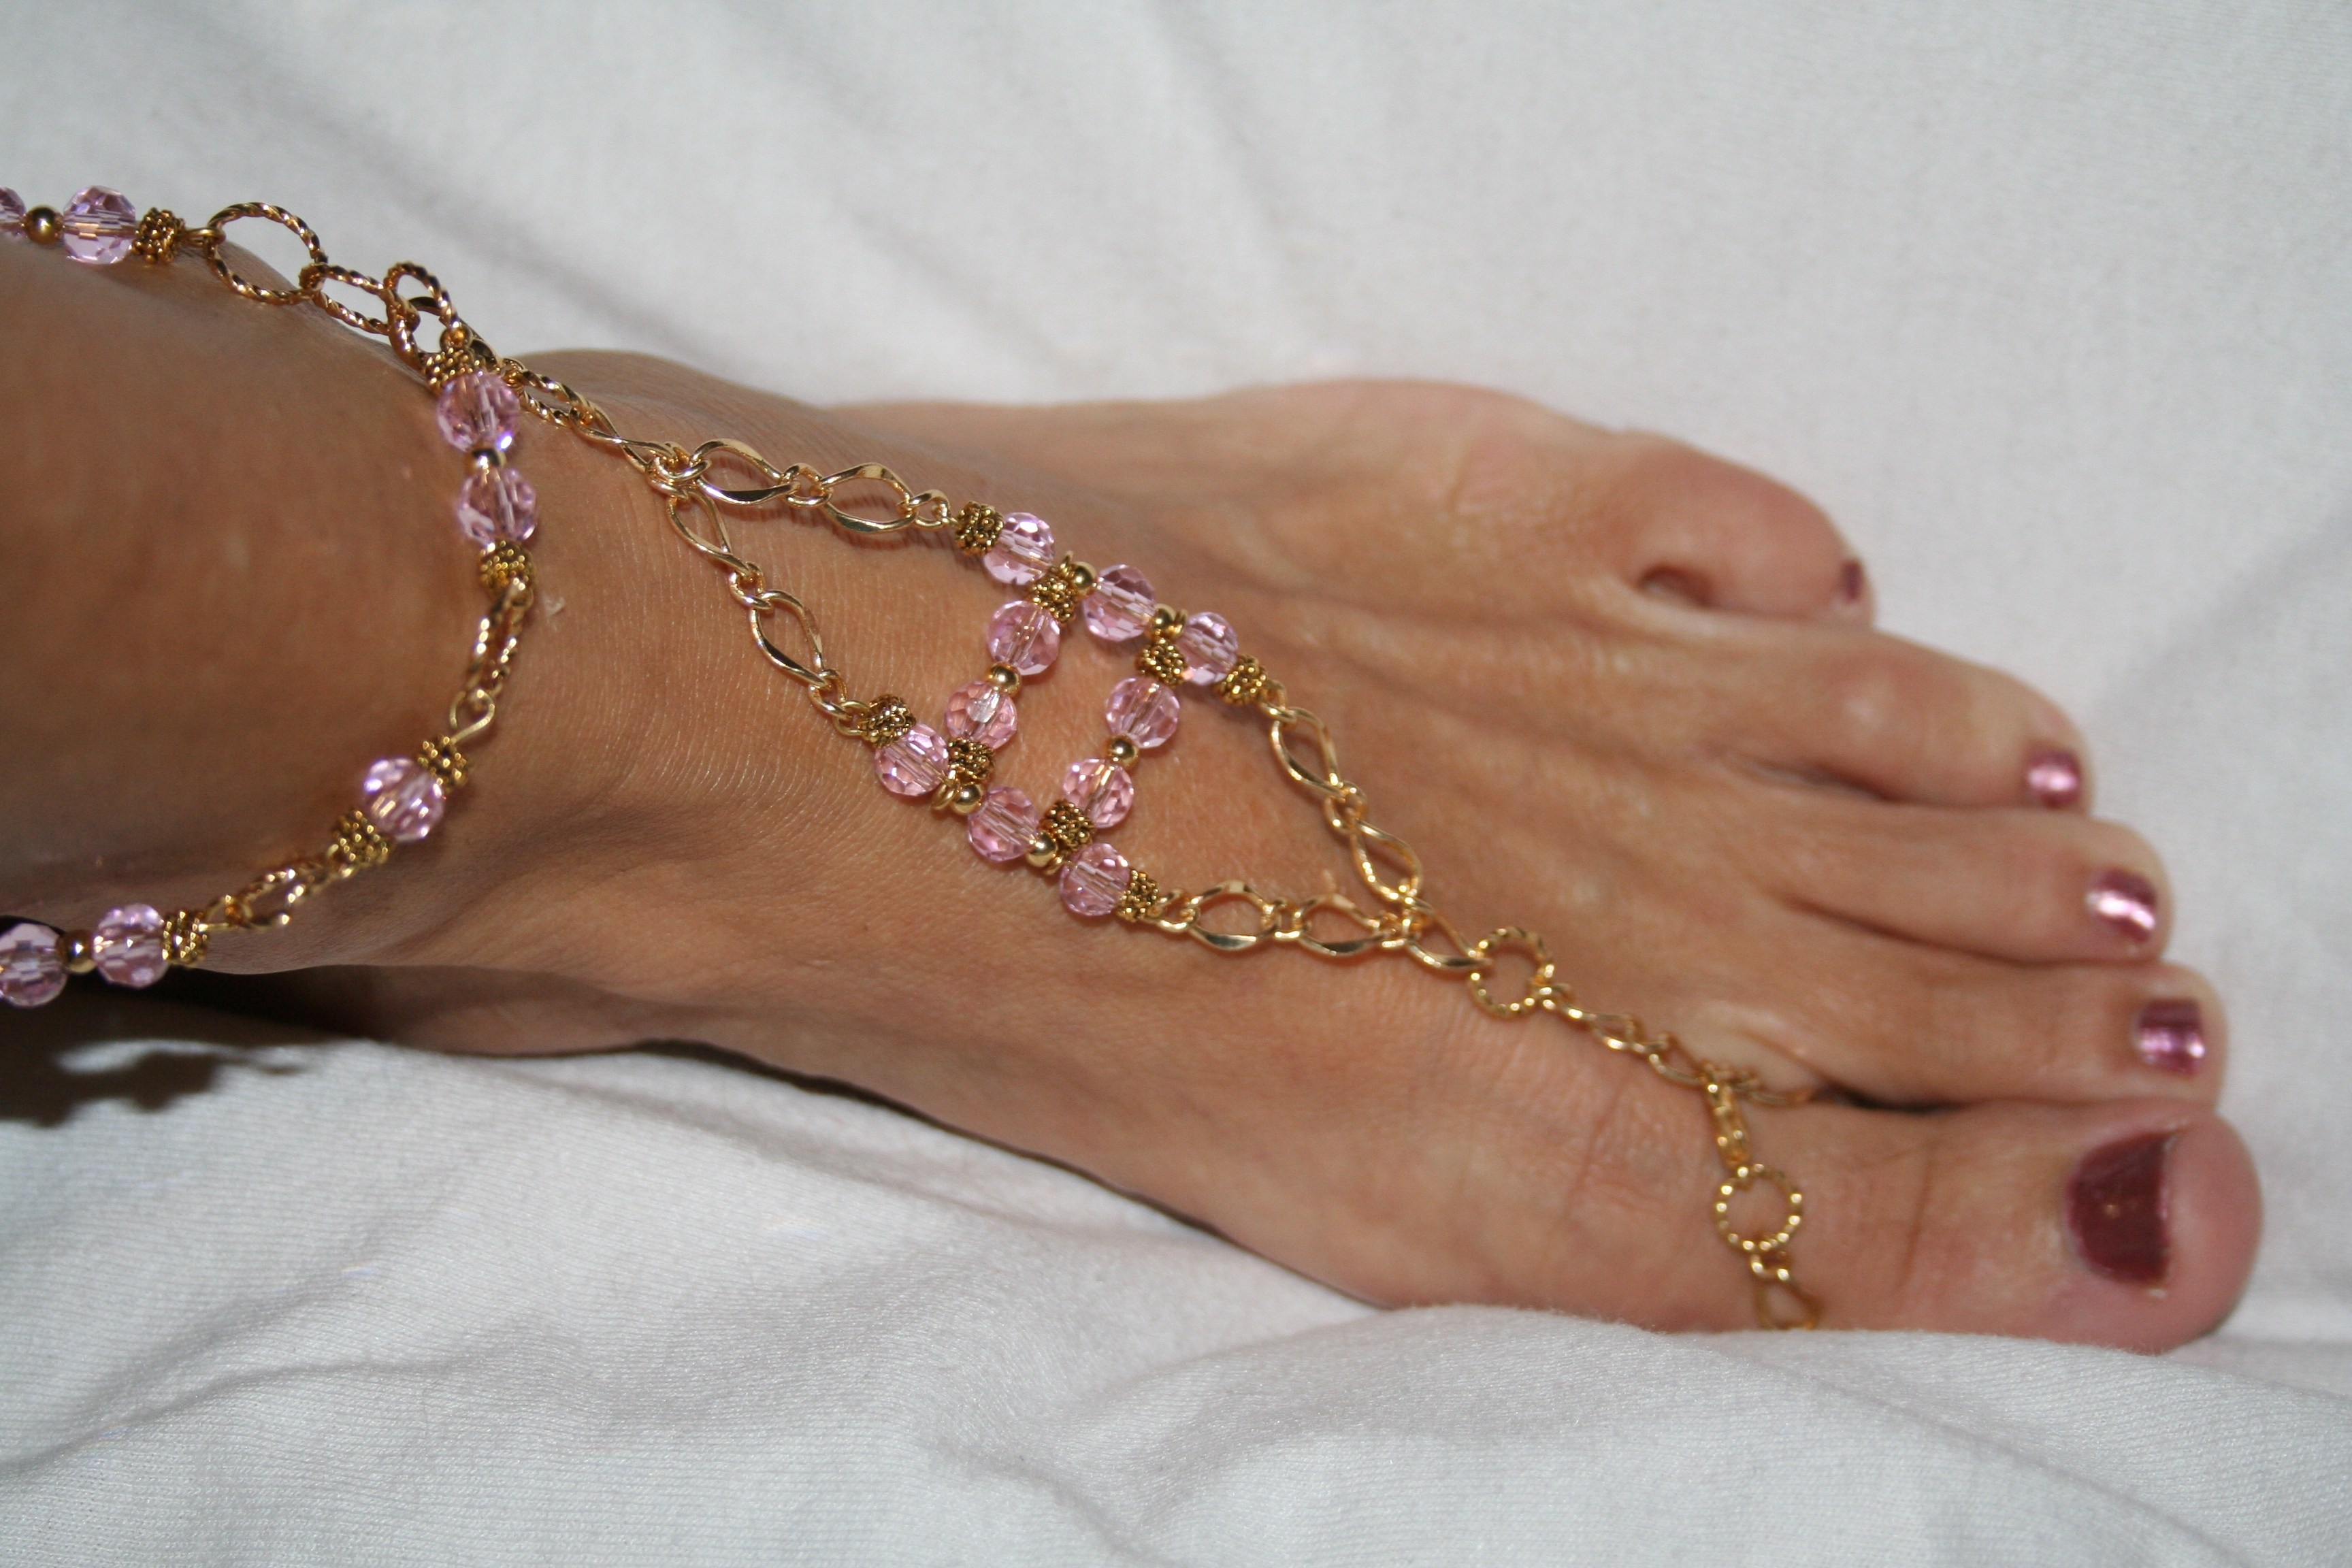 toe ring body within ankle recent bracelet and jewelry flops bracelets of rings florida pink anklet best most matching